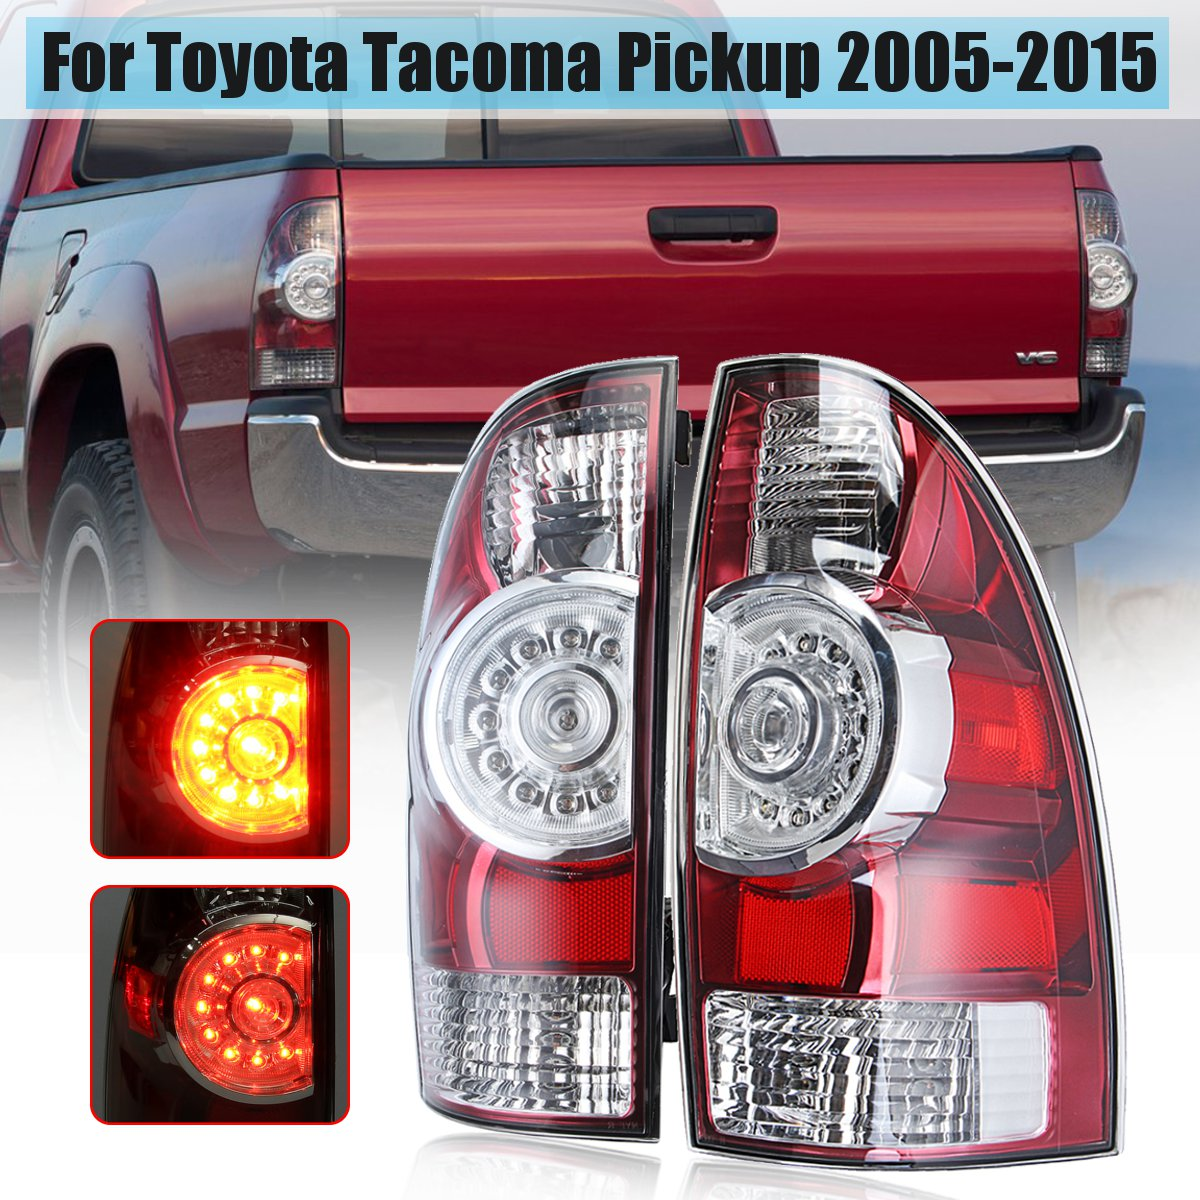 For Toyota Tacoma Pickup 2005-2015 Left/Right Tail Light Lamp With Wire Harness LED Rear Tail Light Brake Lamp